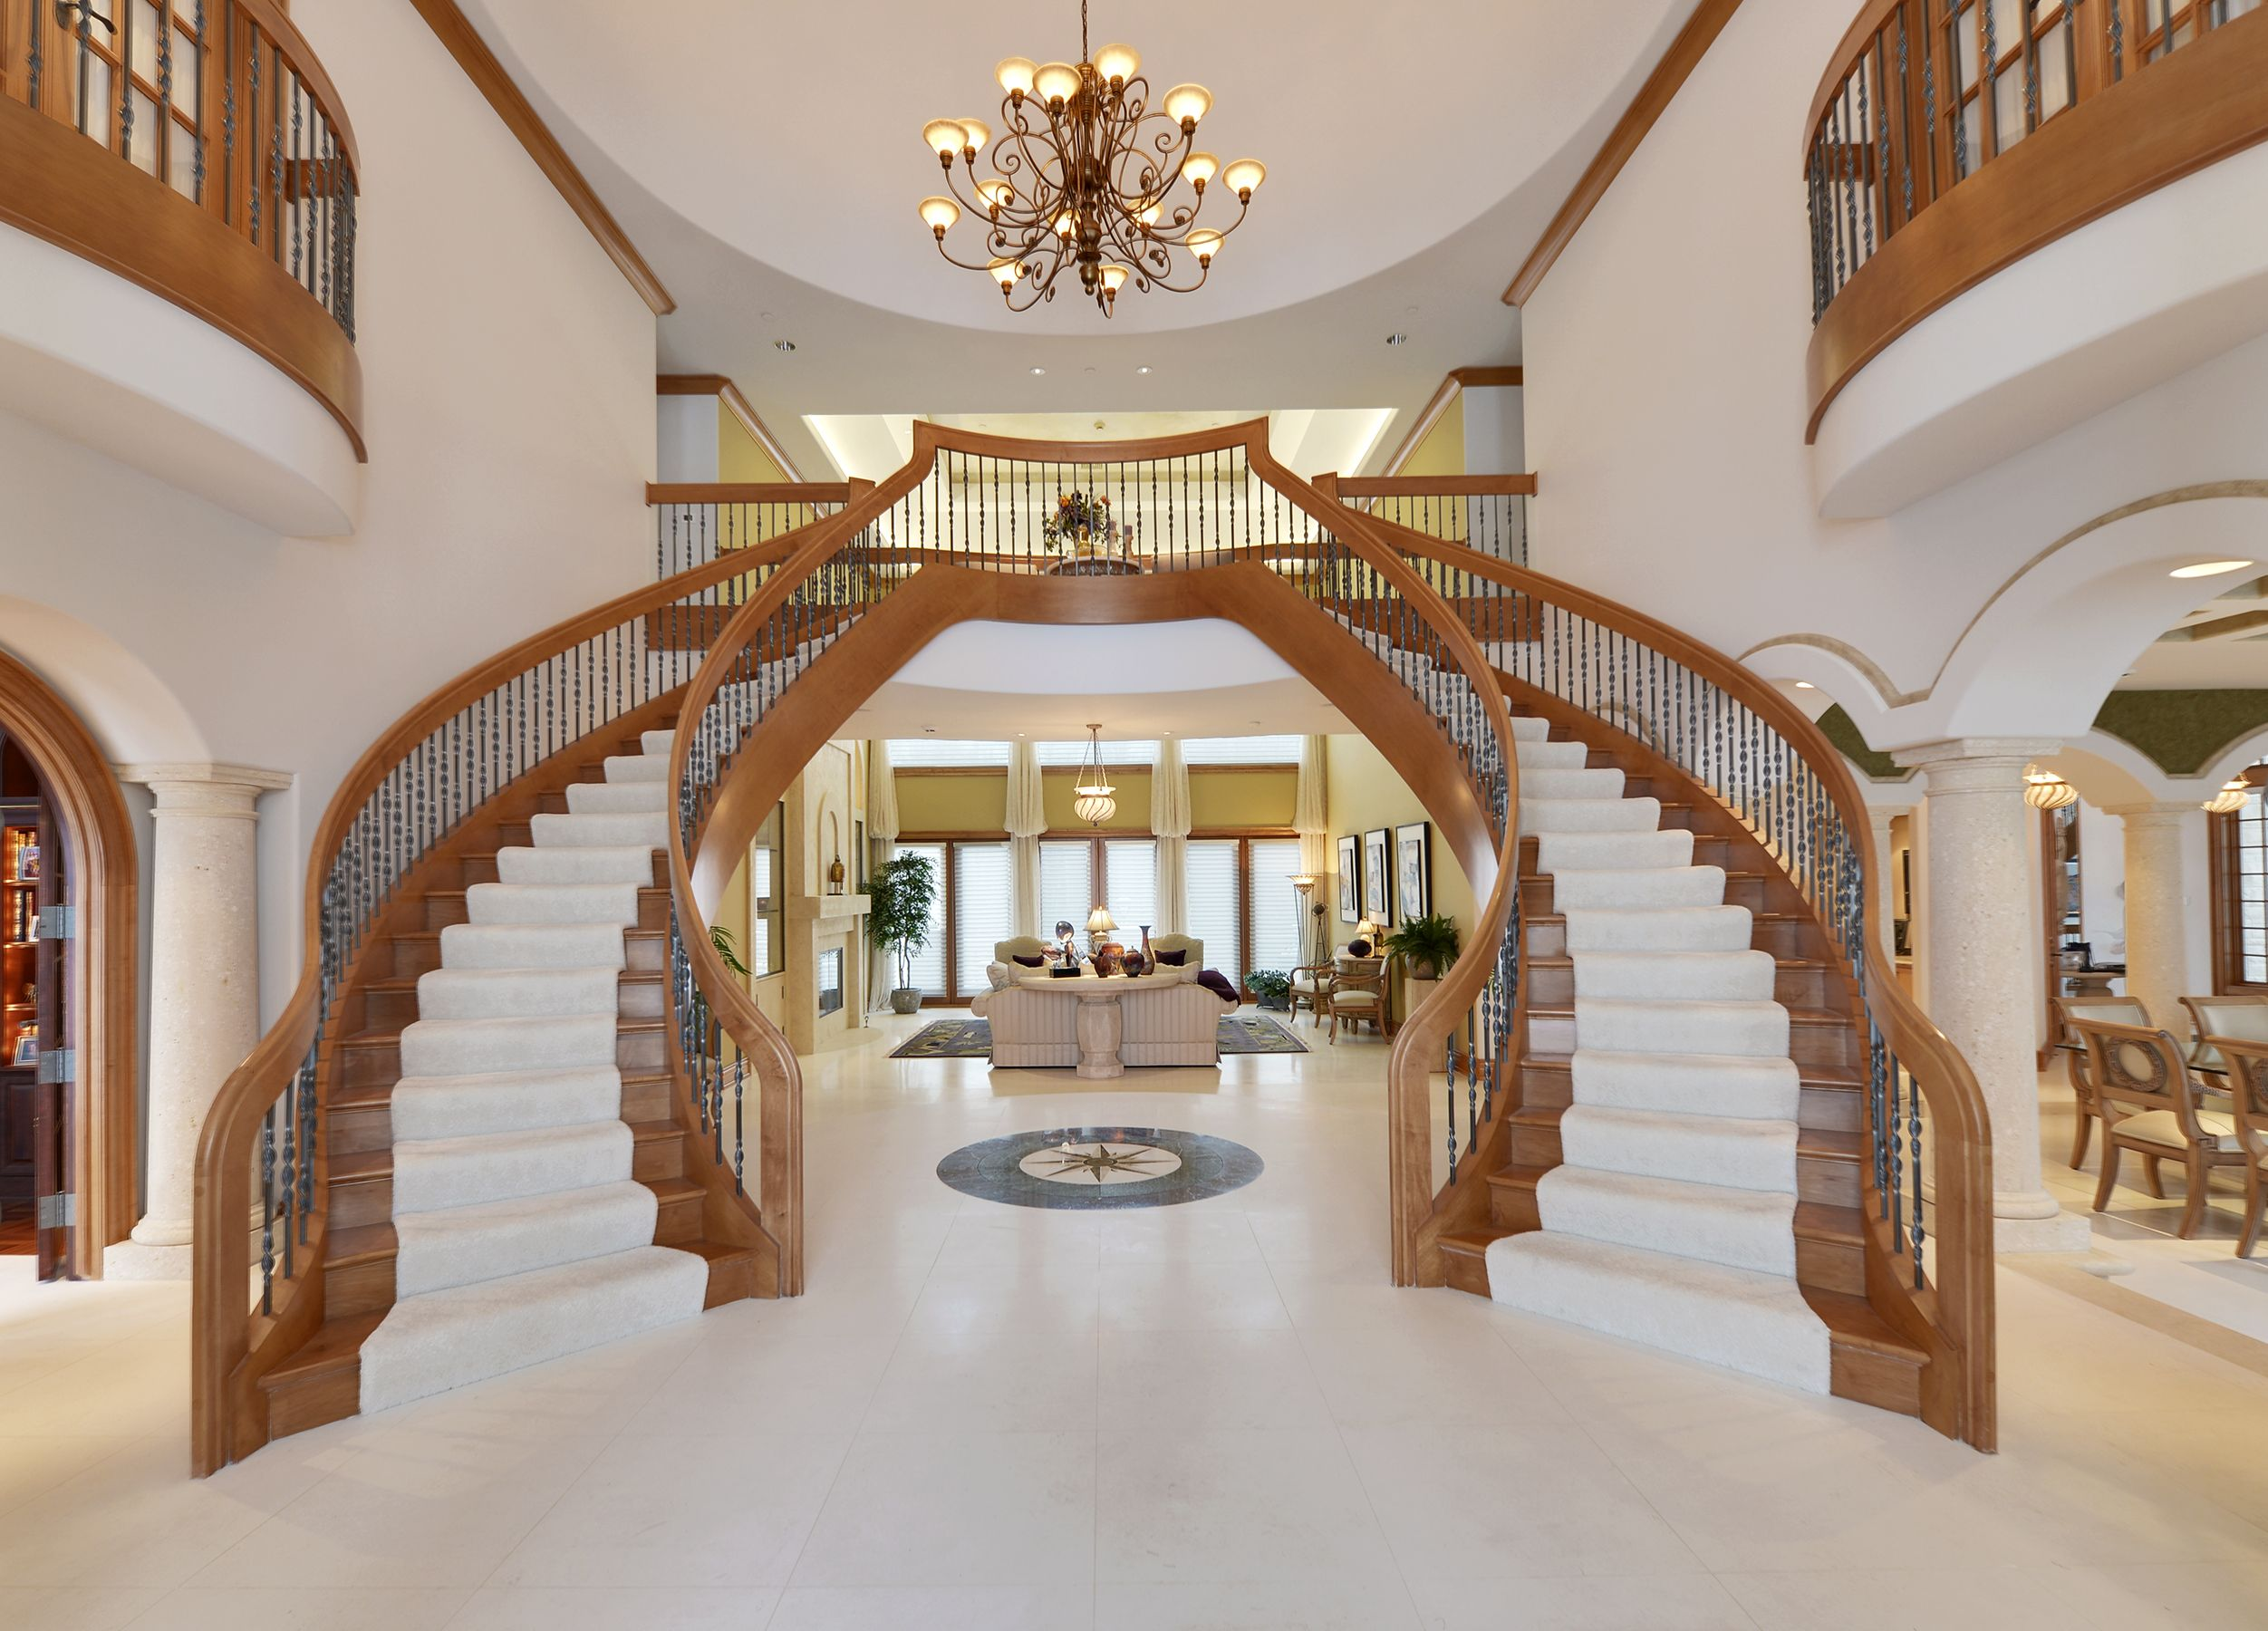 Staircase Home Foyer : Dual staircase in grand foyer luxury homes pinterest